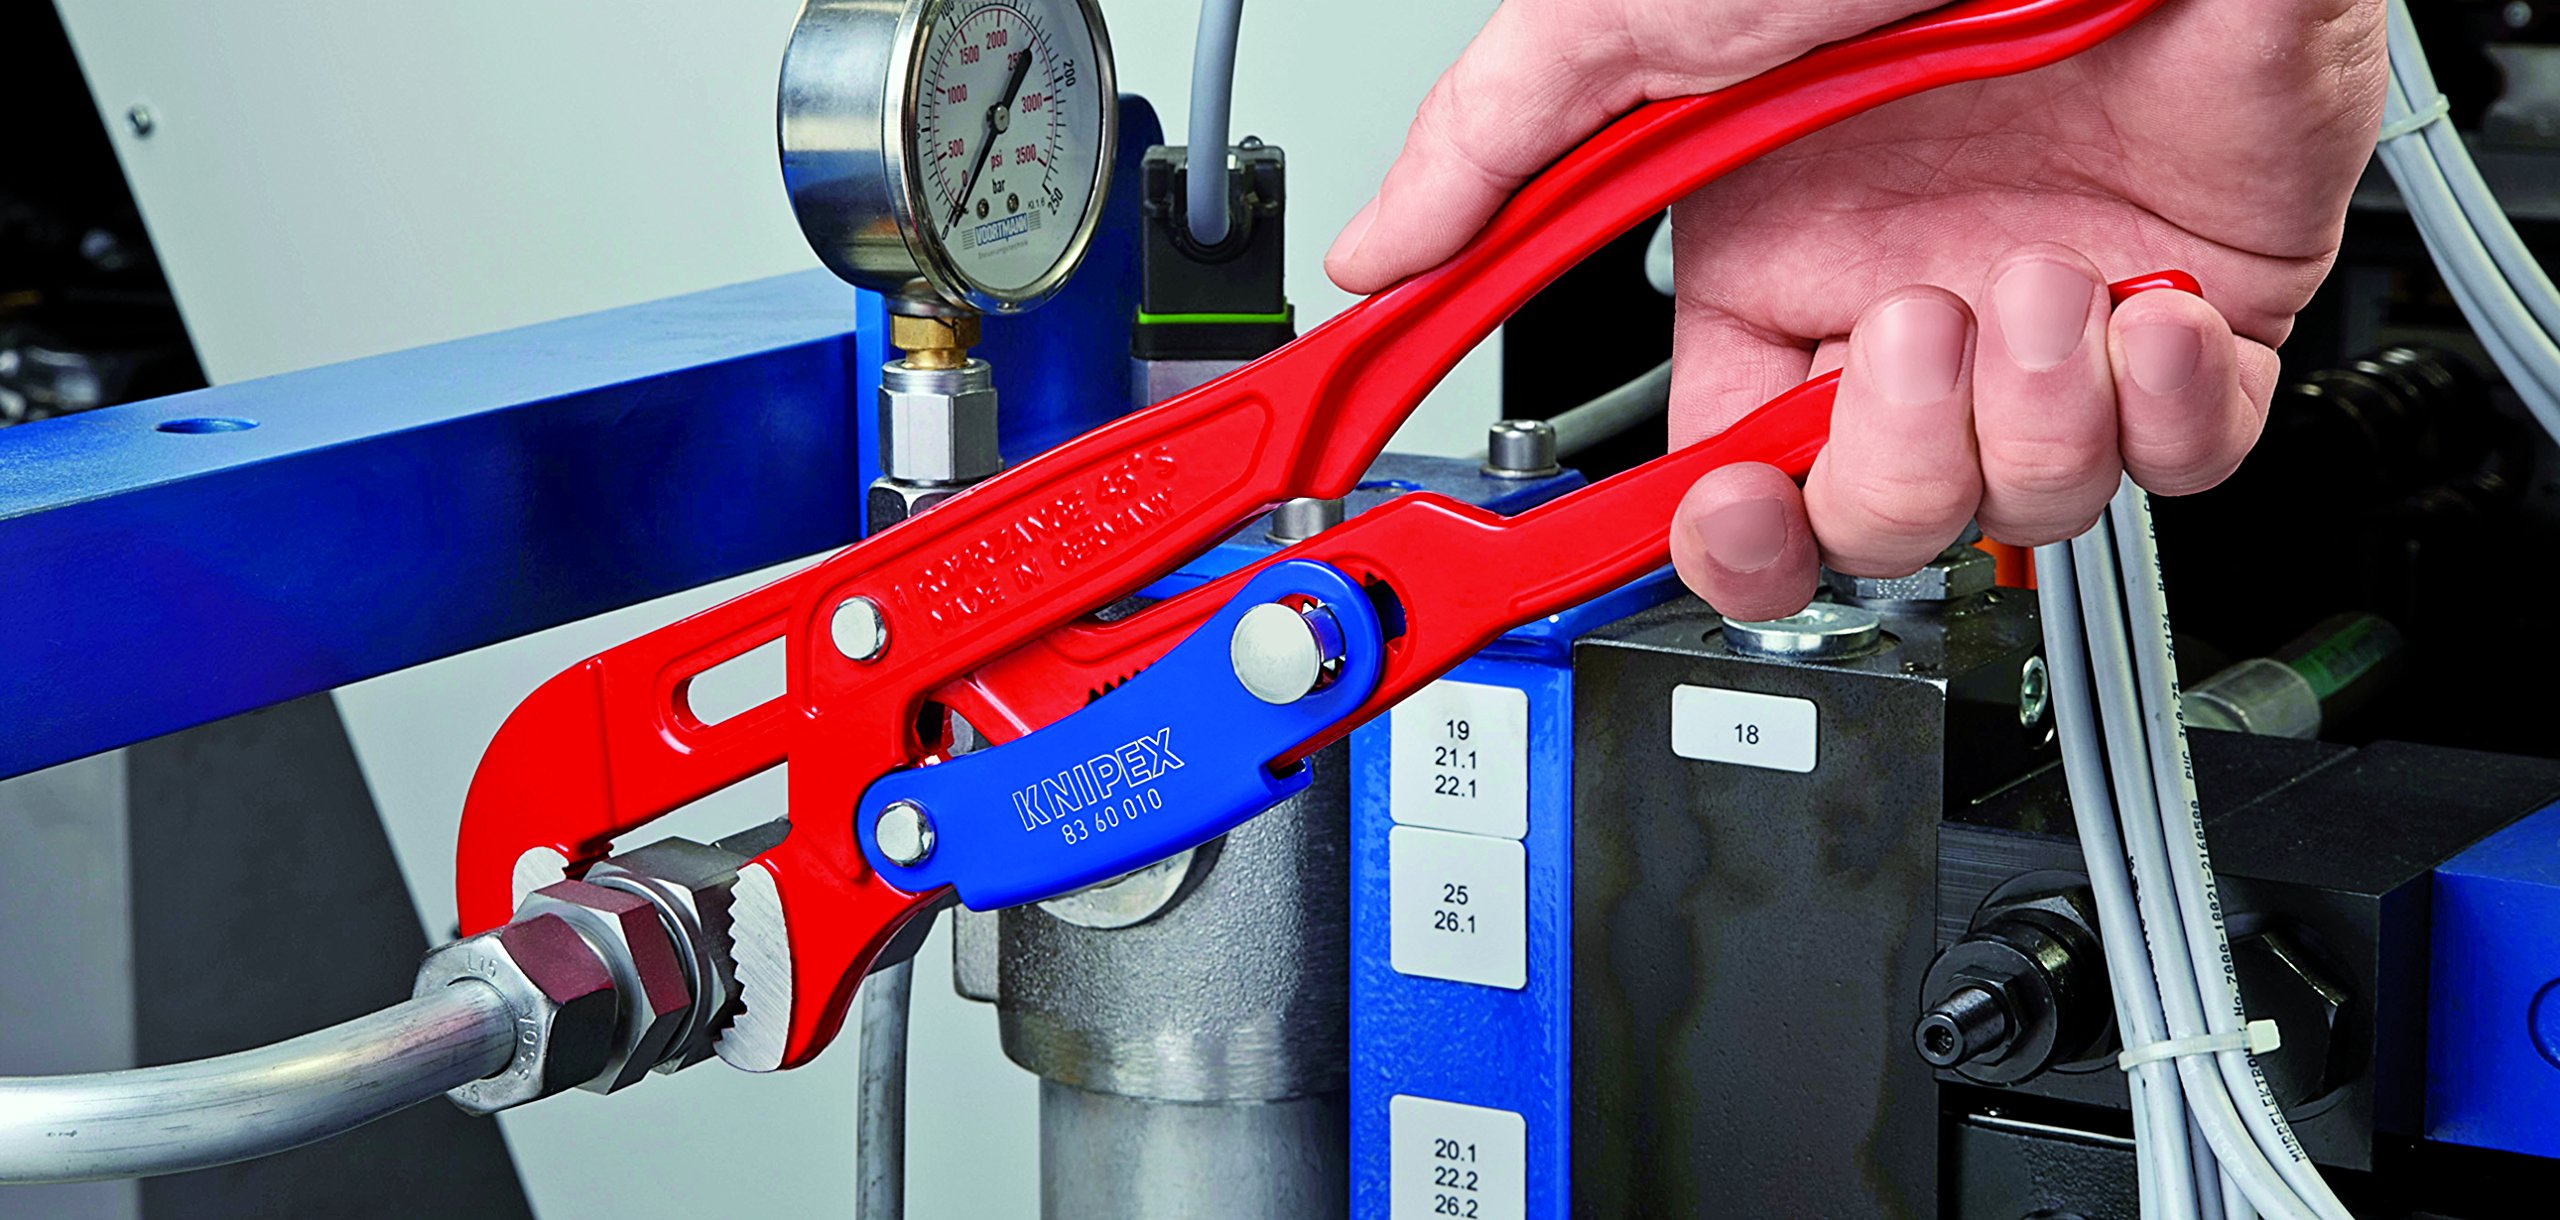 Knipex 83 60 010 Pipe Wrench S-Type with rapid adjustment 1'' in red